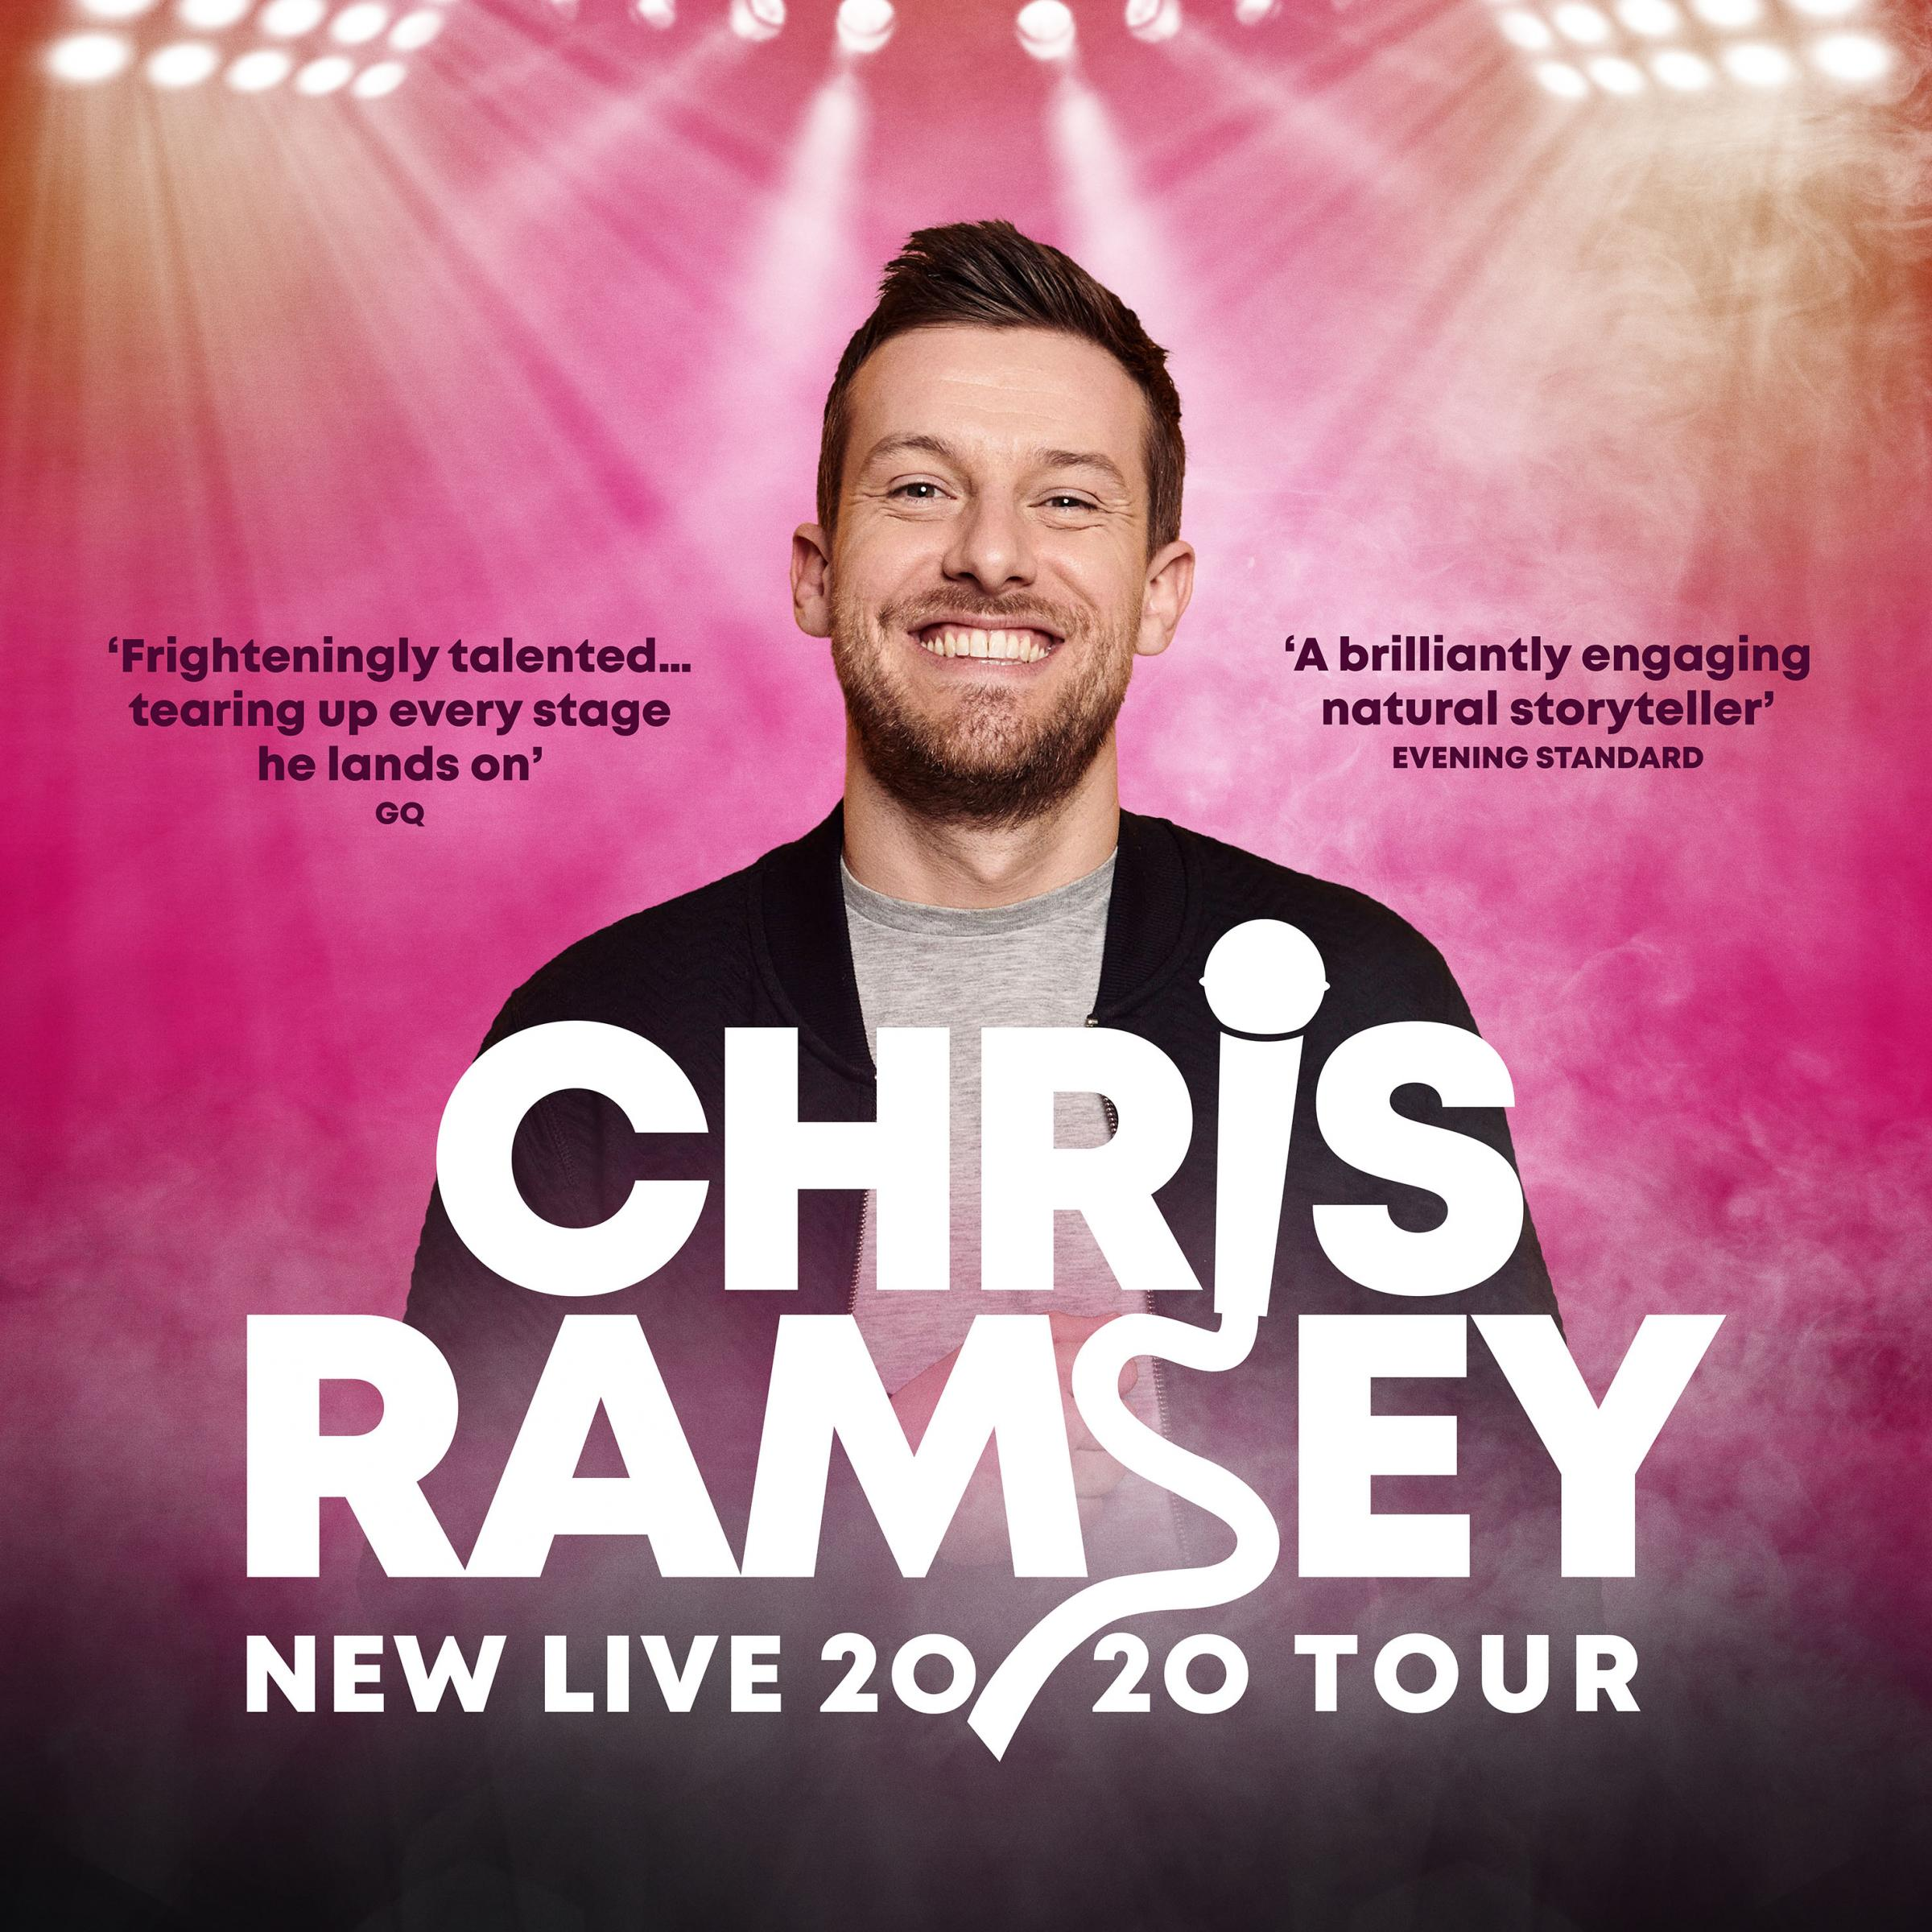 Chris Ramsay 20/20 The Brand New Stand-Up Tour